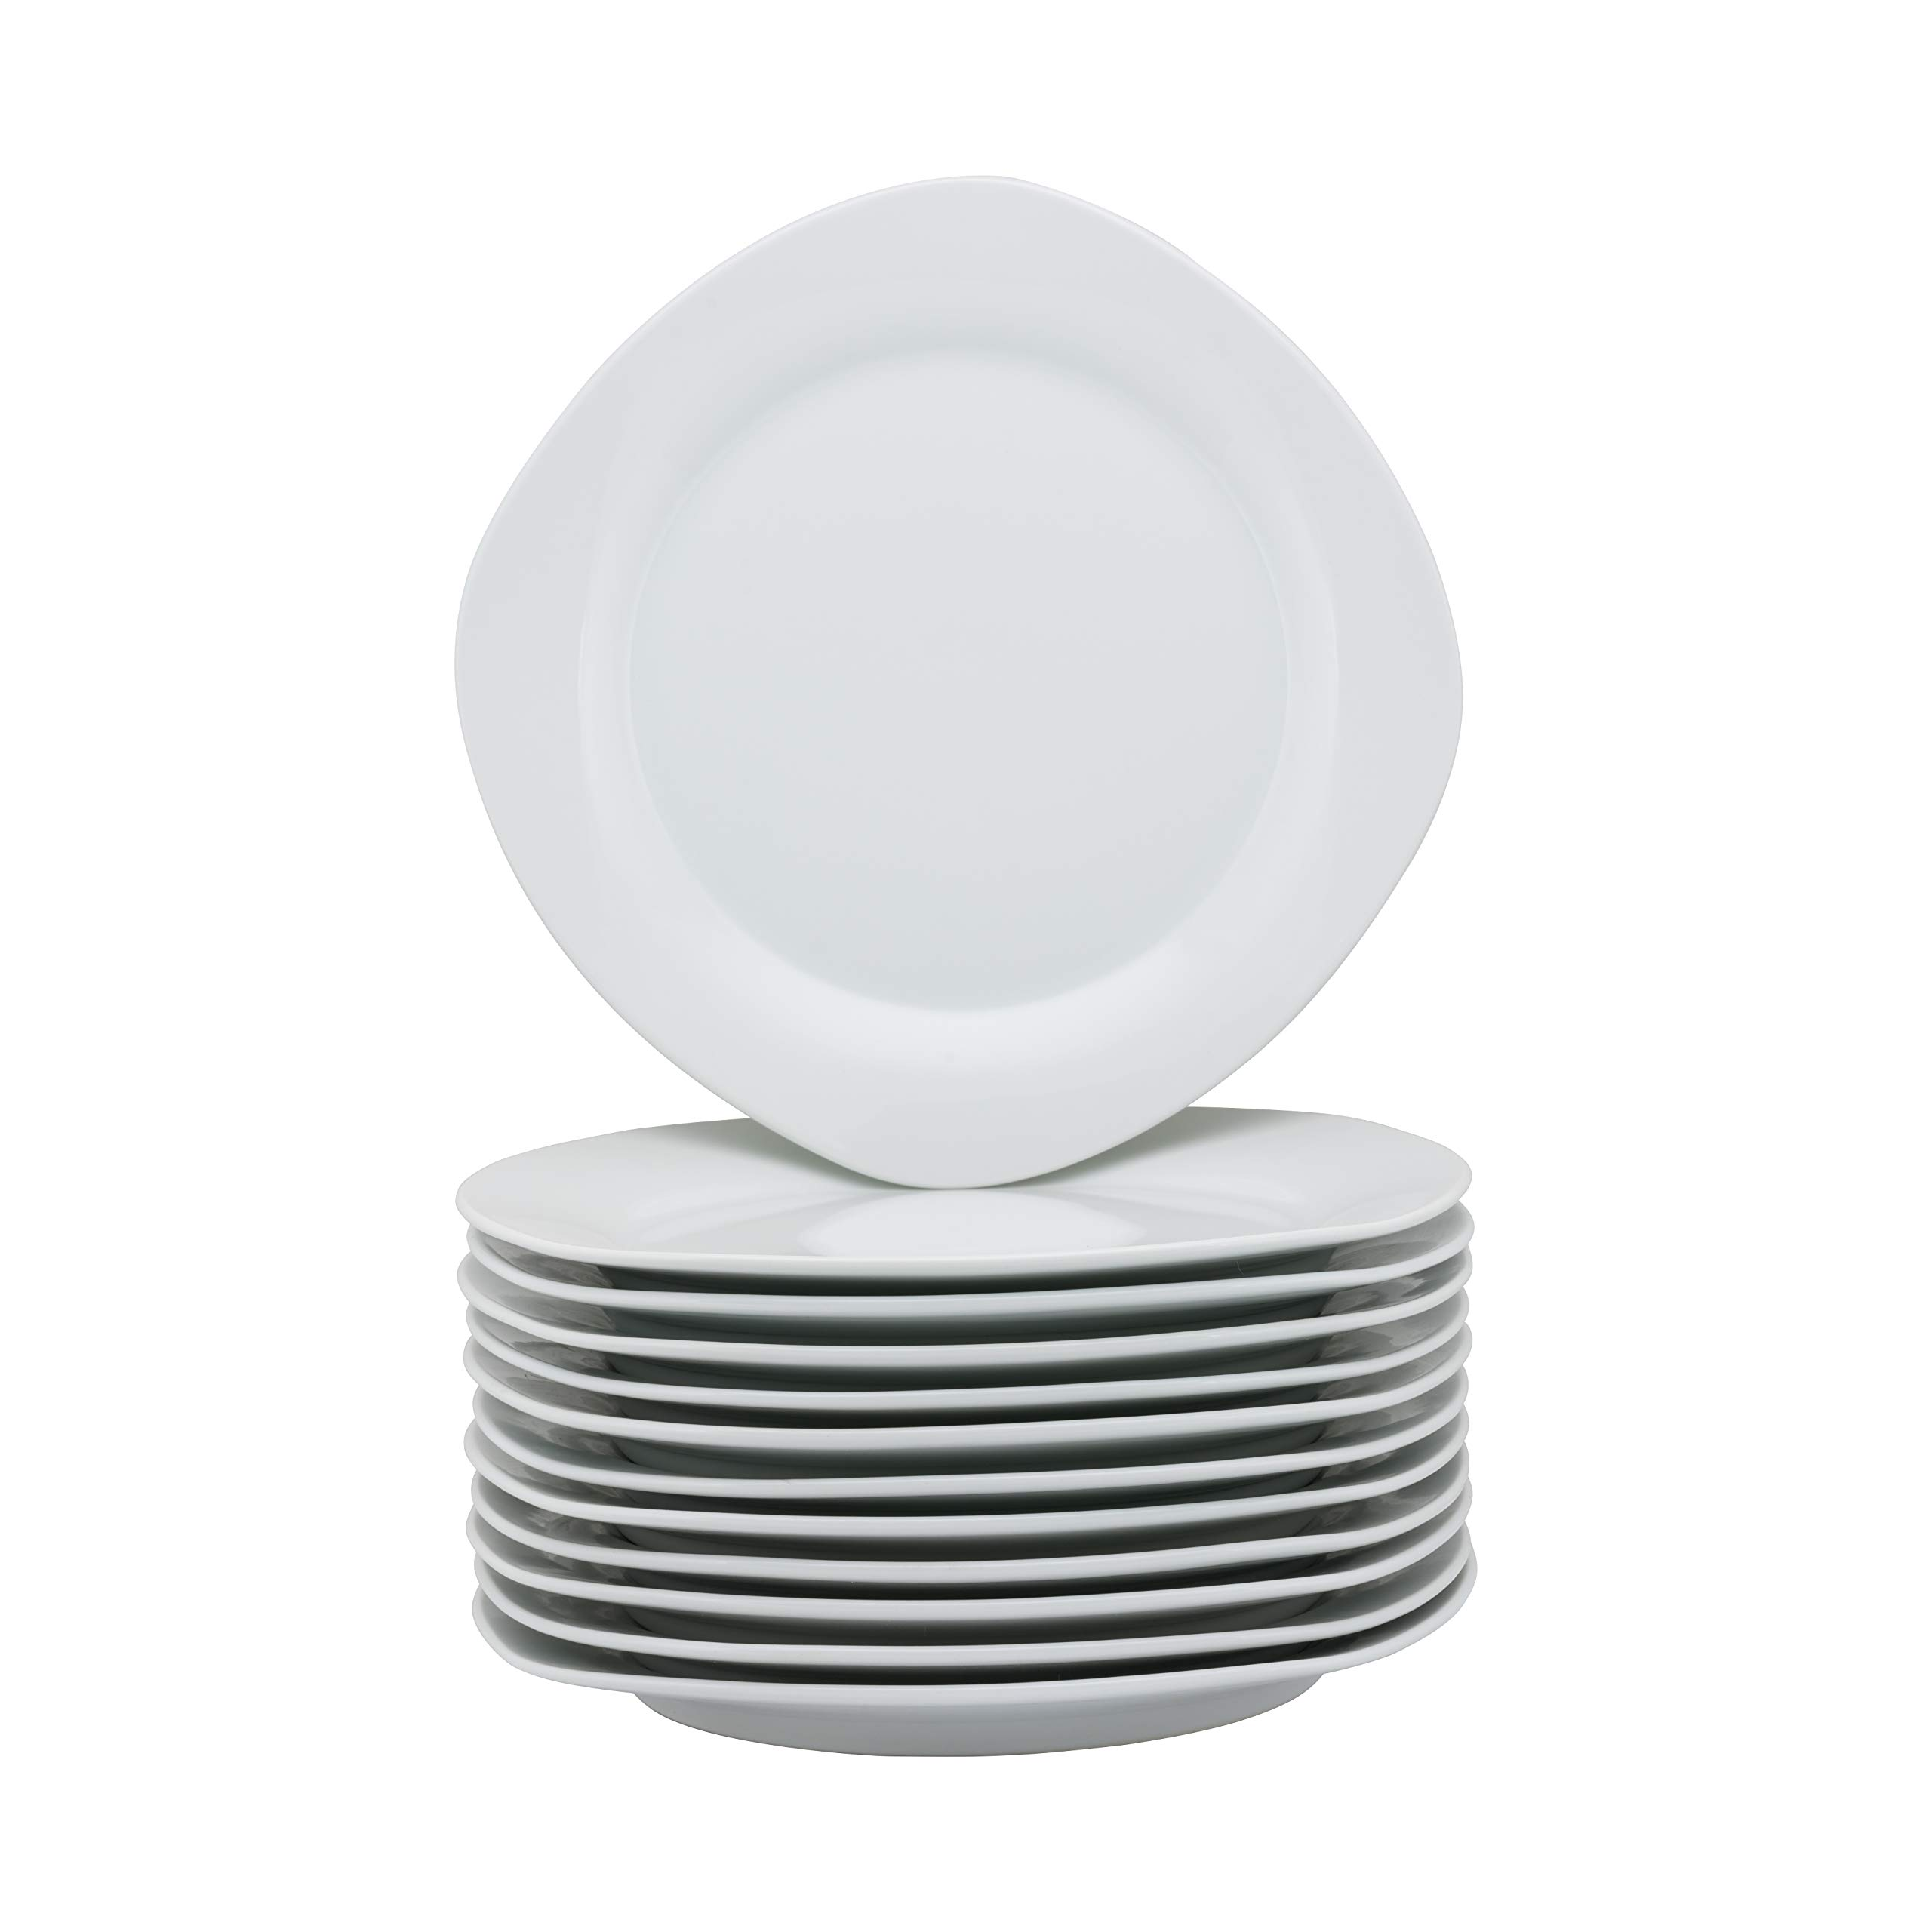 10 Strawberry Street CATERING-12-SQDINNER-W Catering Packs Square Dinner Plates White by 10 Strawberry Street (Image #1)